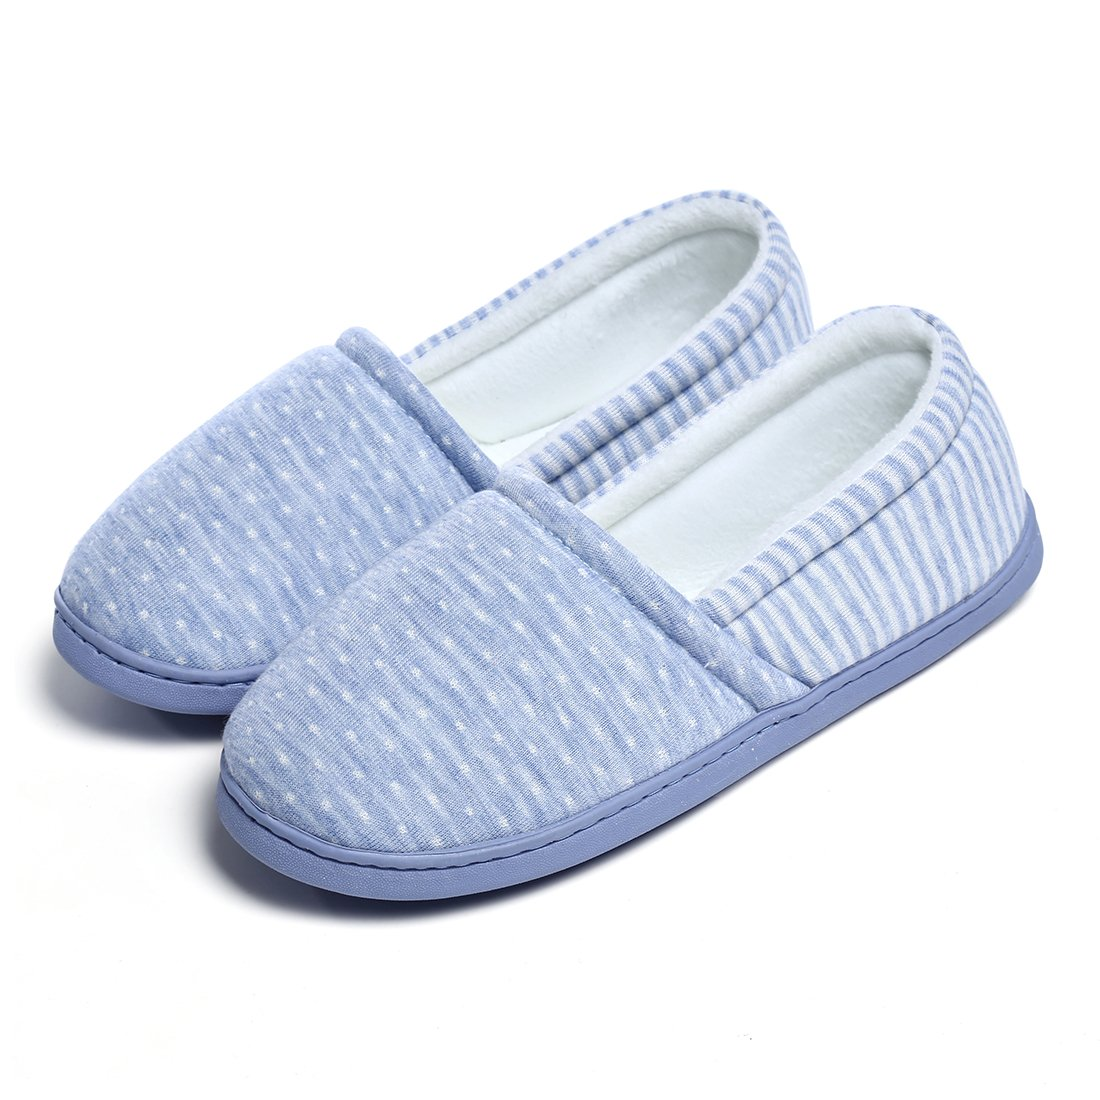 Cellicigal Women Cotton Knit Anti-Slip Comfort Indoor Slippers Slip-On Bedroom Home Shoes (8-8.5 B(M) US, Blue)